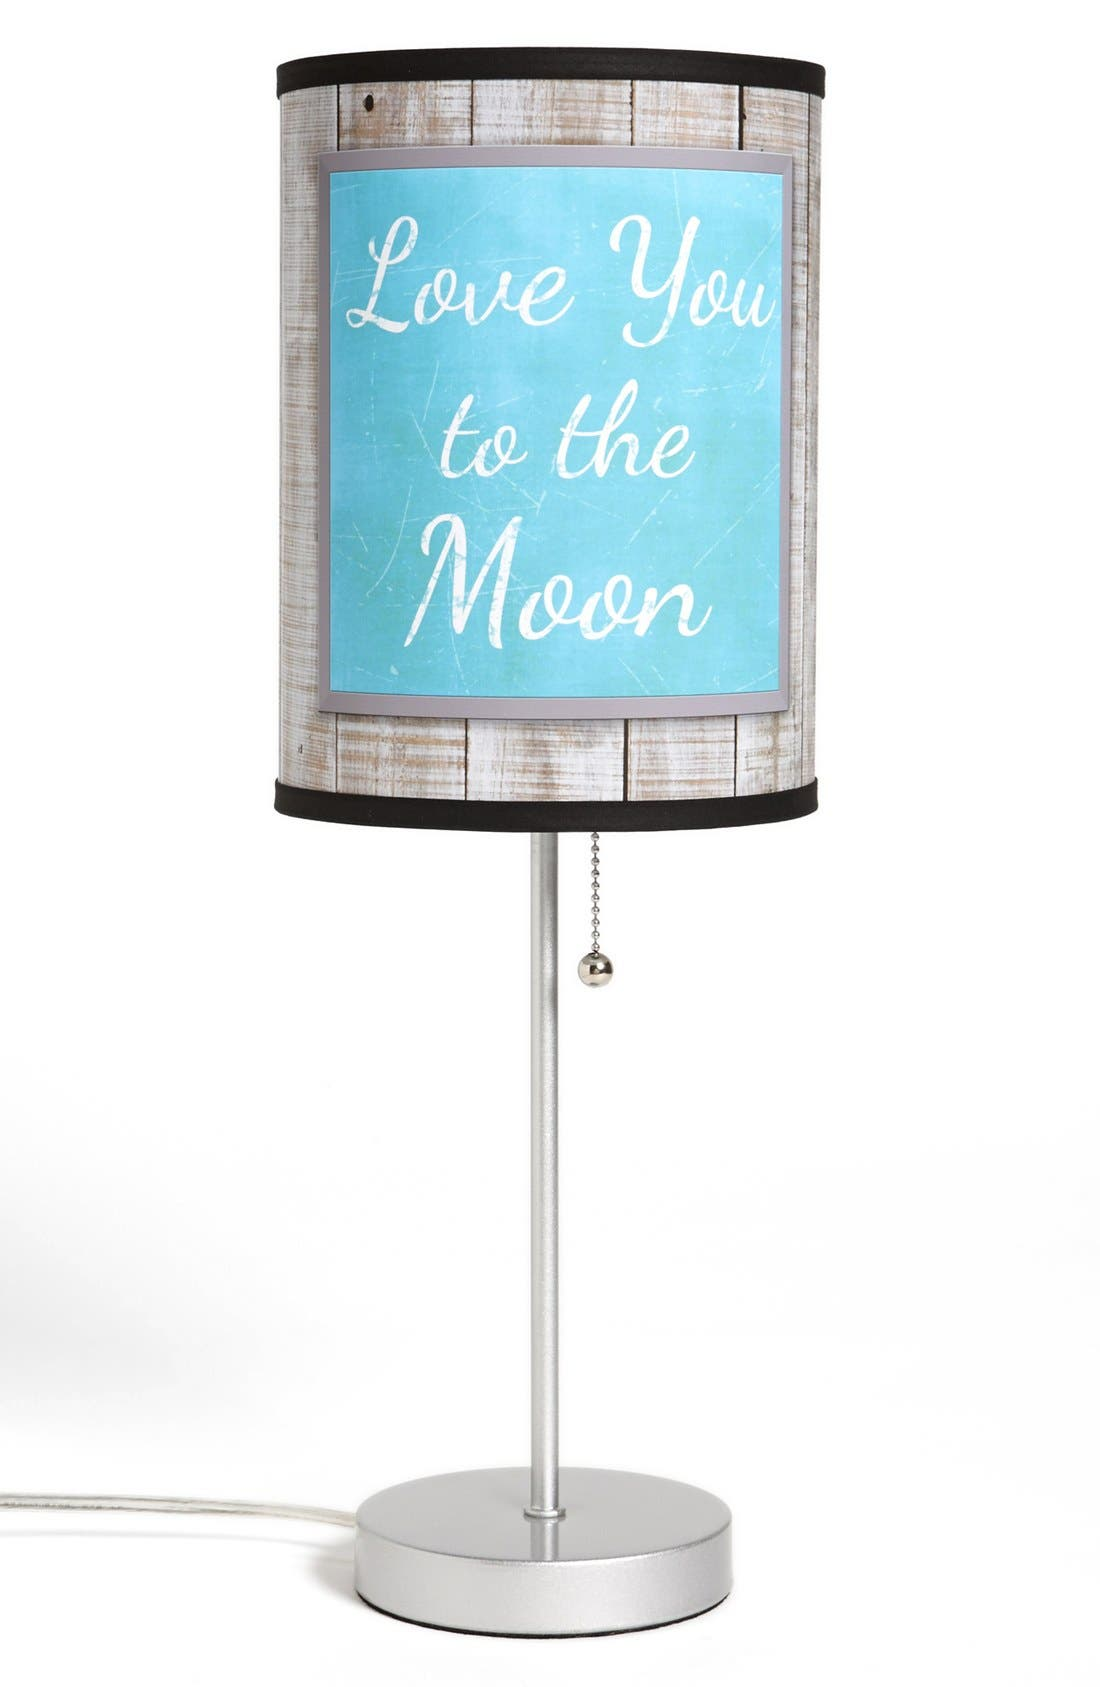 Main Image - LAMP-IN-A-BOX 'Love You to the Moon' Table Lamp